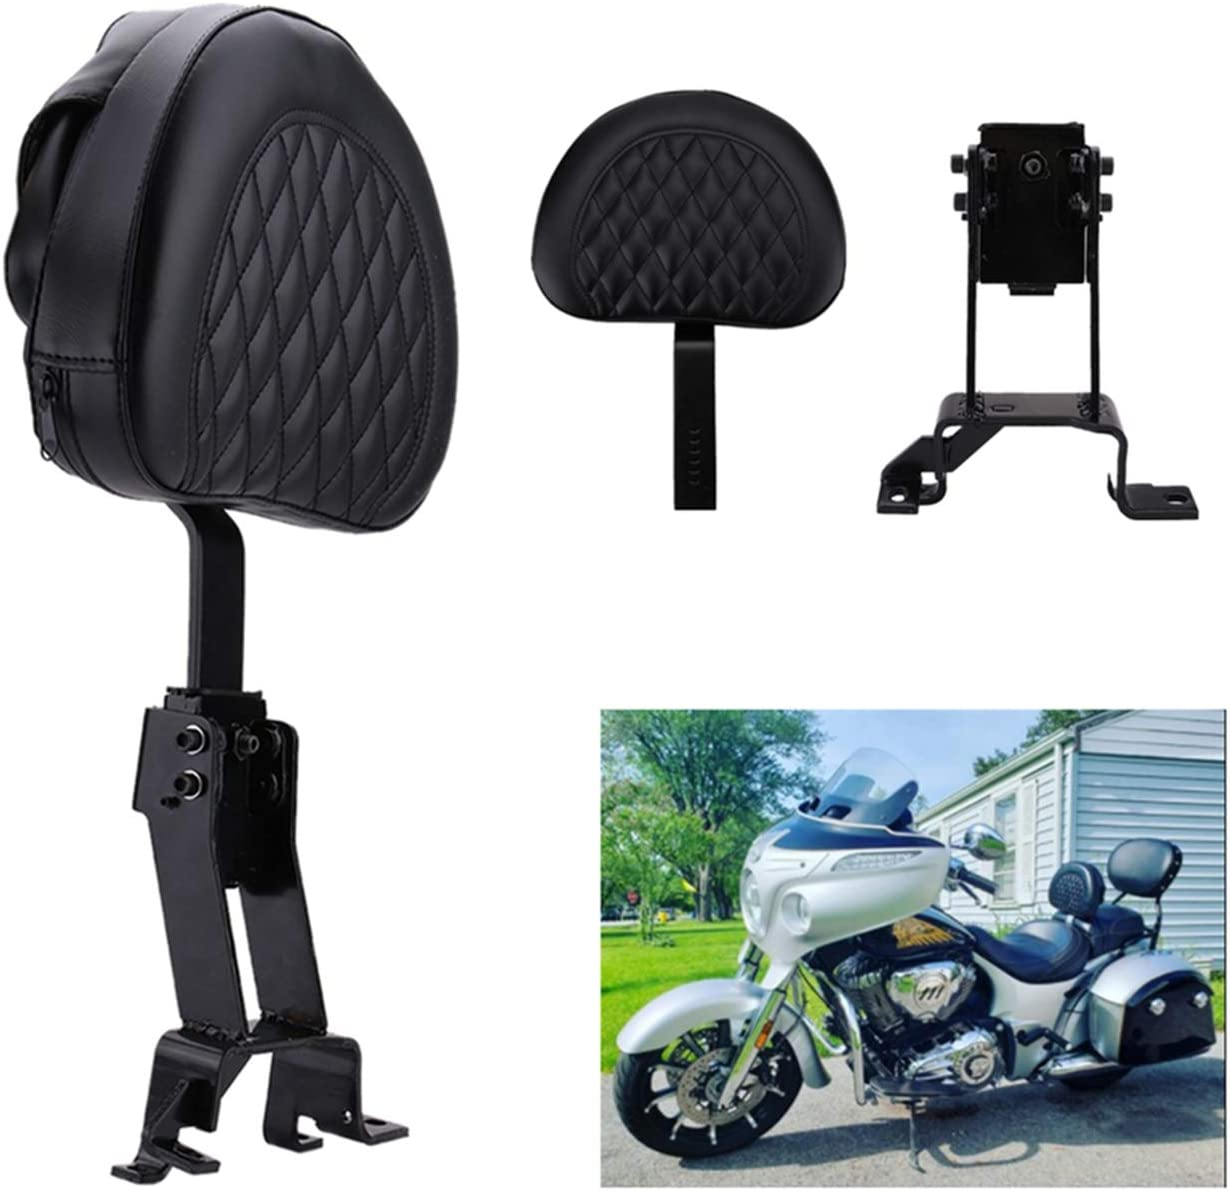 Springfield Models 2014-2018 Chieftain Type A Chief Dark Horse Roadmaster Chief Vintage Plug In Driver Backrest Pad Rider Sissy Bar Back Rest With Pocket For Indian Chief Classic